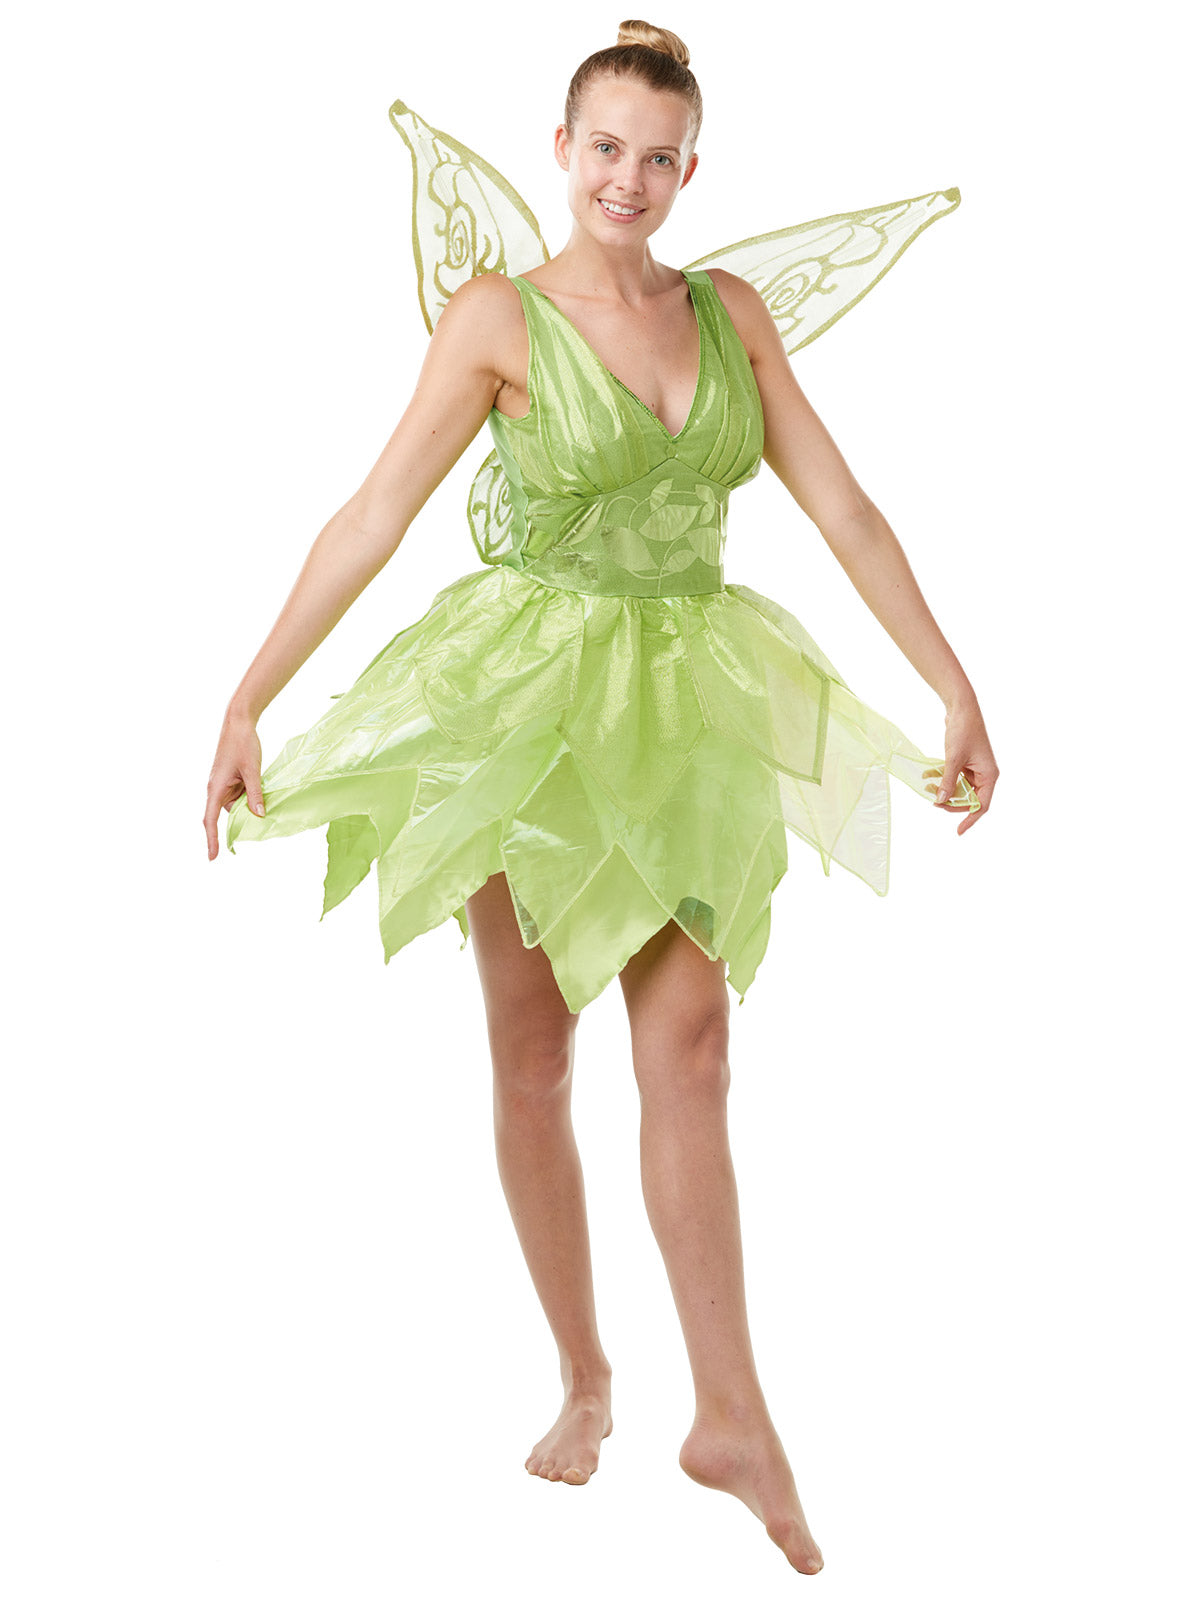 Tinker Bell Classic Deluxe Costume - Buy Online Only